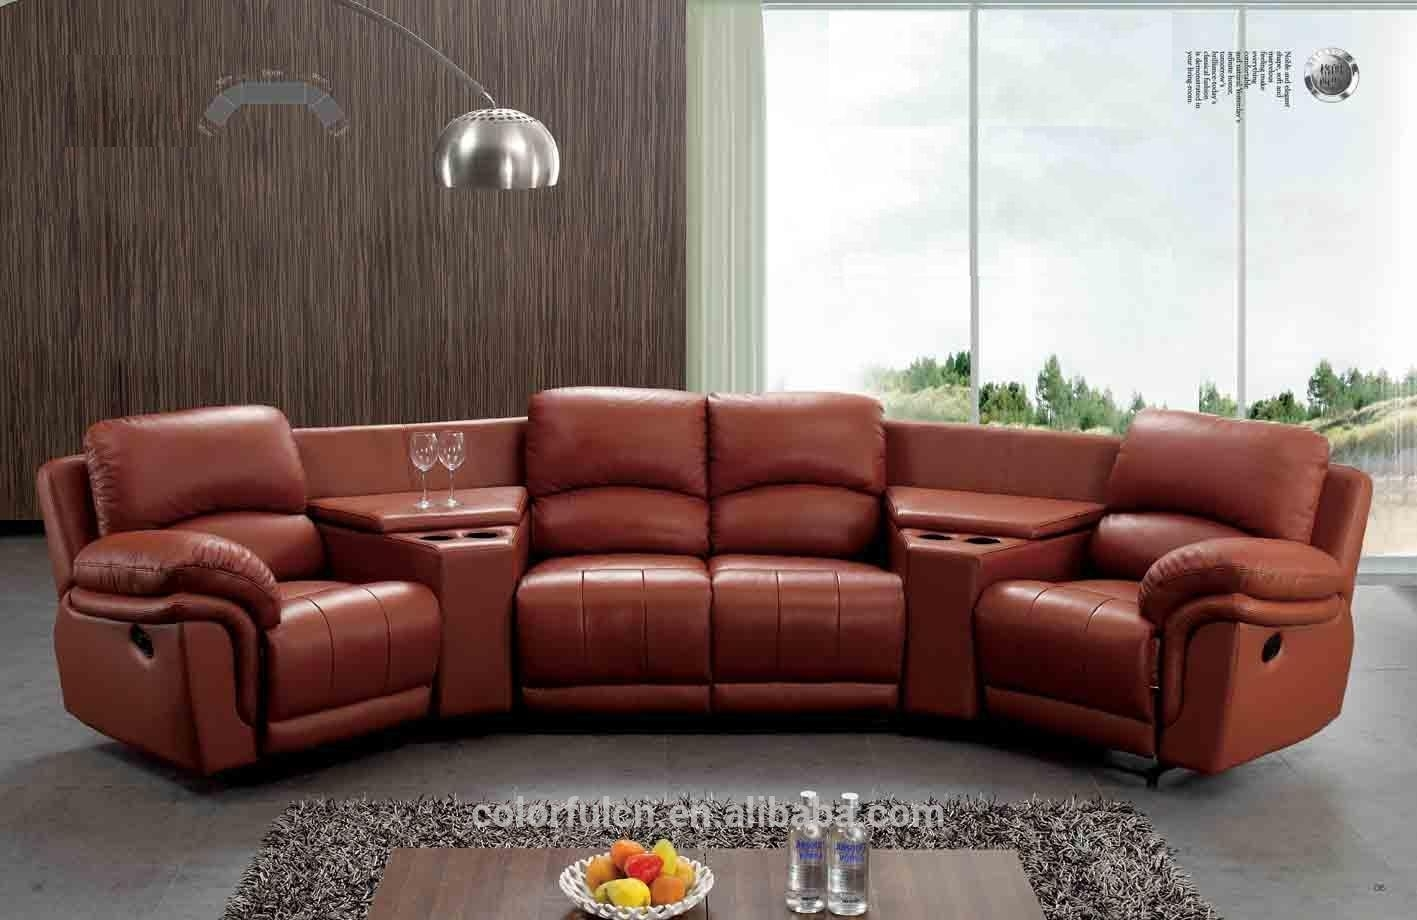 Semi-Circle Sectional Sofa/new Design Recliner Sofa(608) - Buy Semi within Sectional Sofas In Hyderabad (Image 8 of 10)